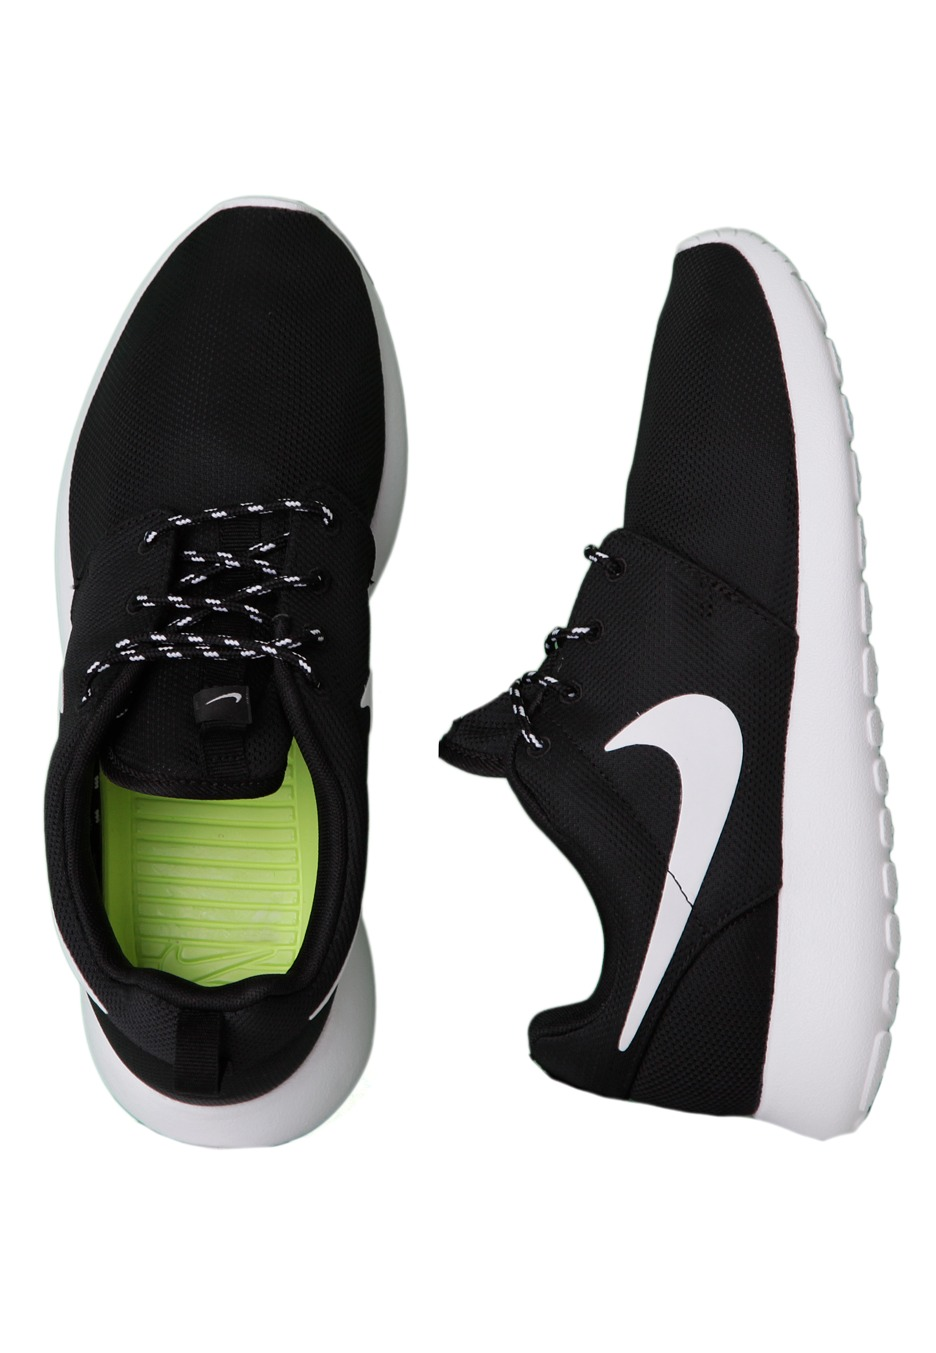 Nike Black Shoes For Girls